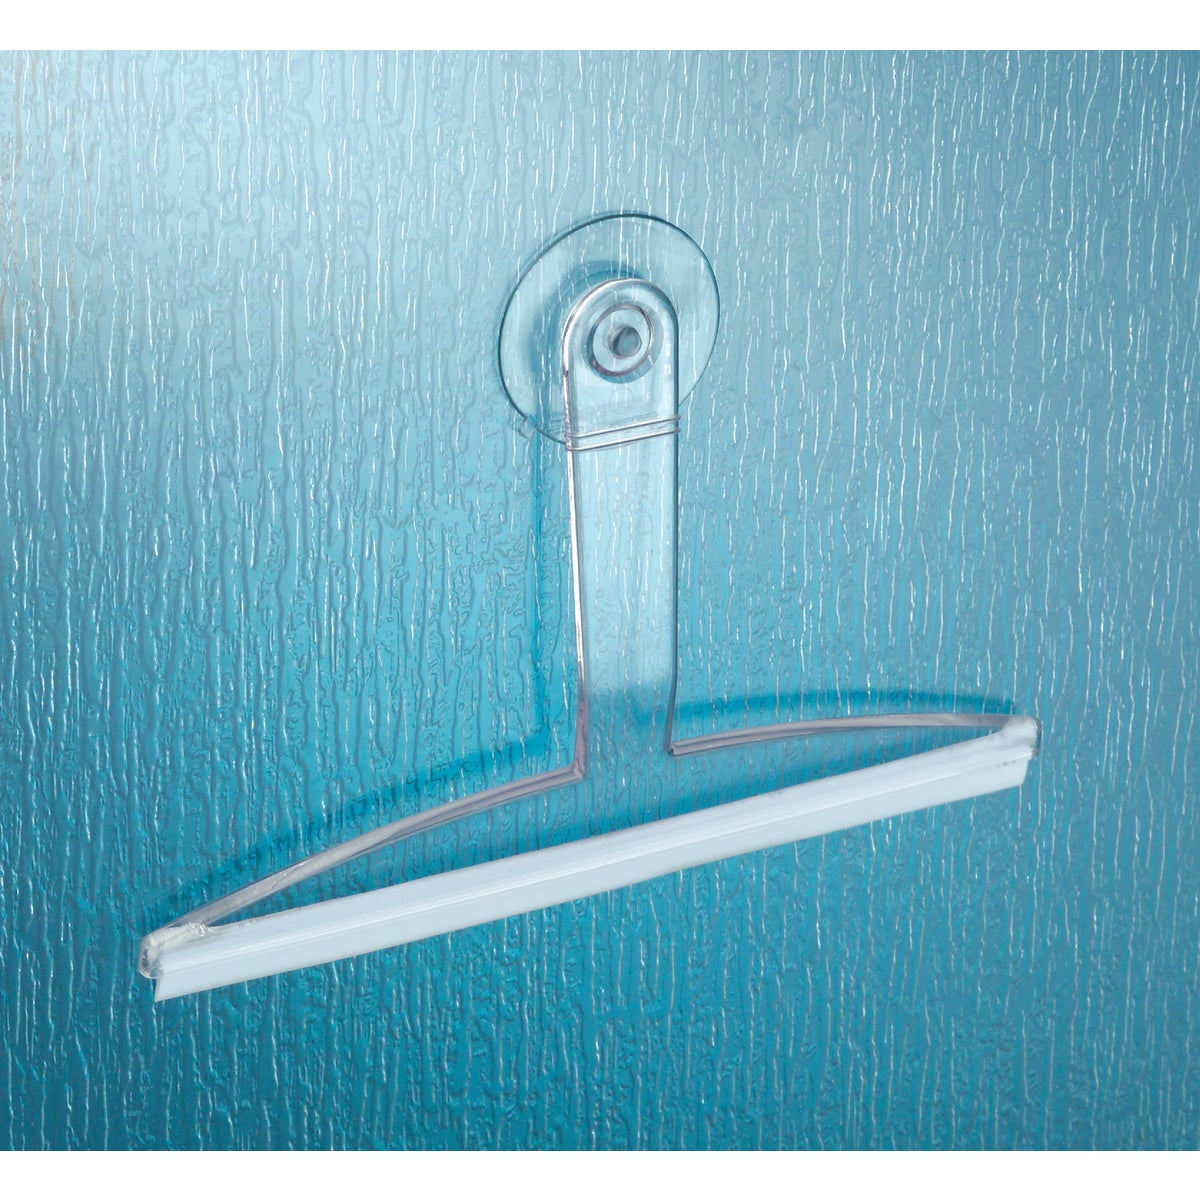 CLEAR SUCTION SQUEEGEE